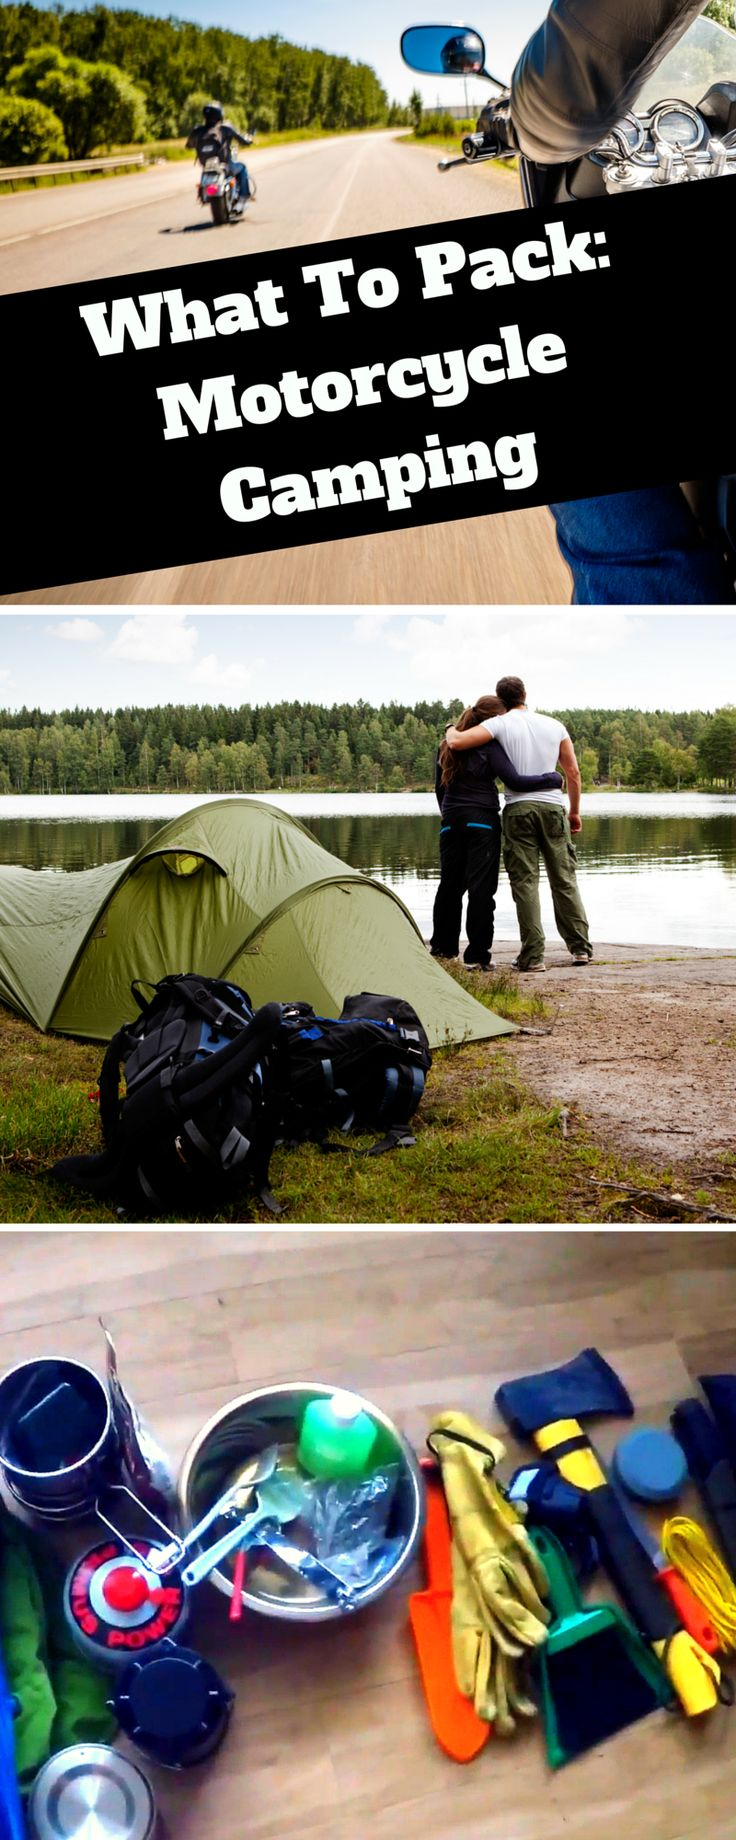 Packing for your an overnight motorcycle camping trip? Here's a great camp supplies list! Check it out here: http://blog.bikerornot.com/what-to-pack-for-an-overnight-motorcycle-camping-trip/?ref=pinterest-roadtrip